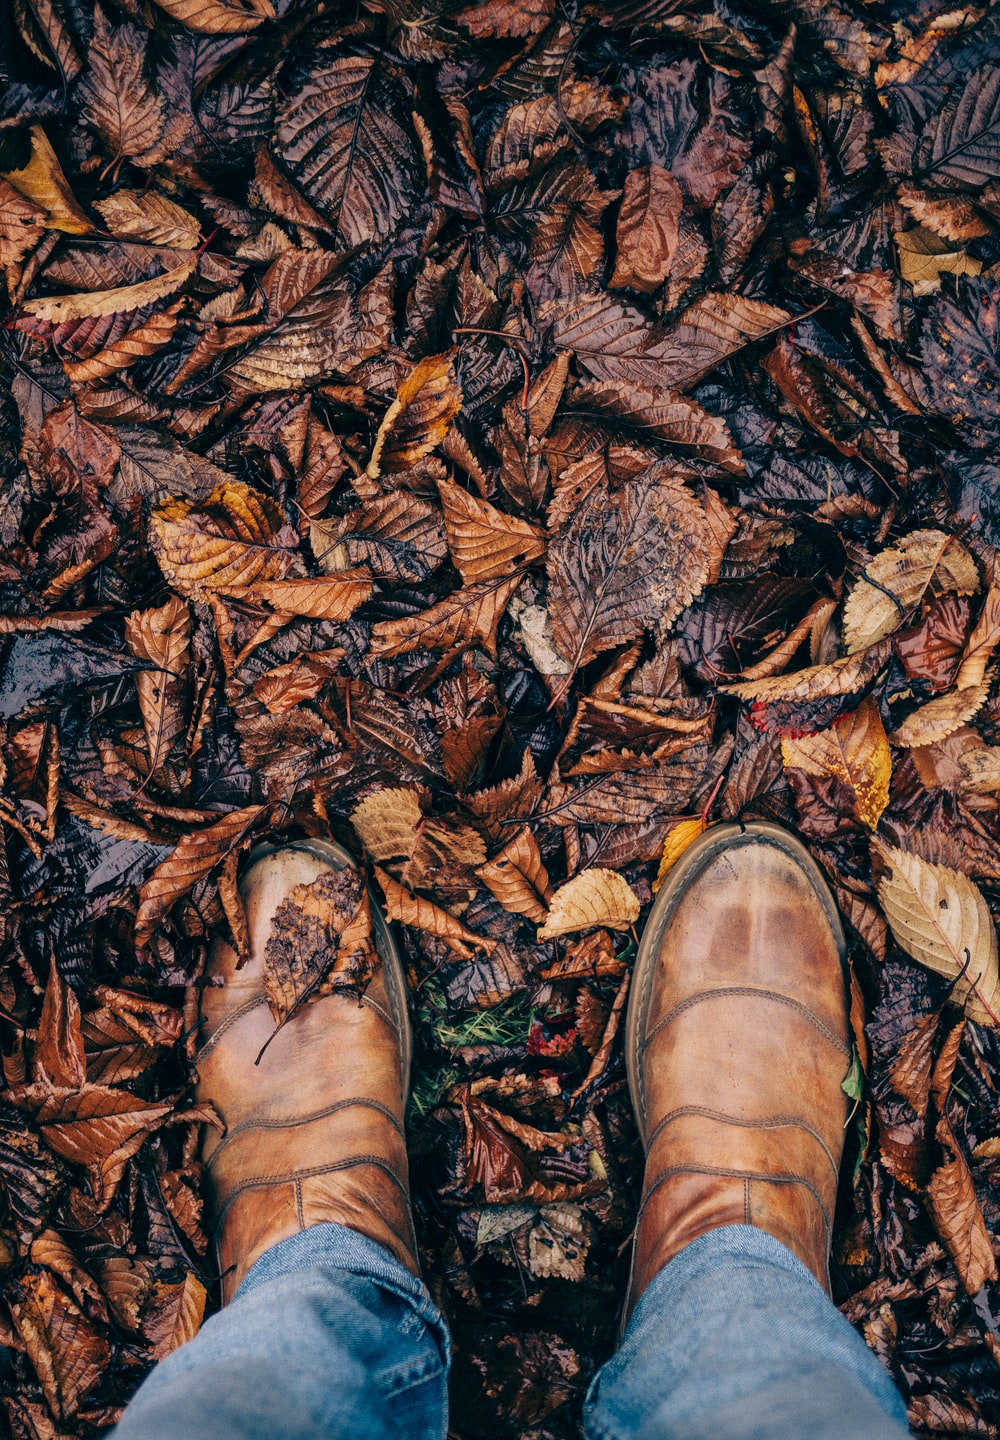 person stepping on dried leaves